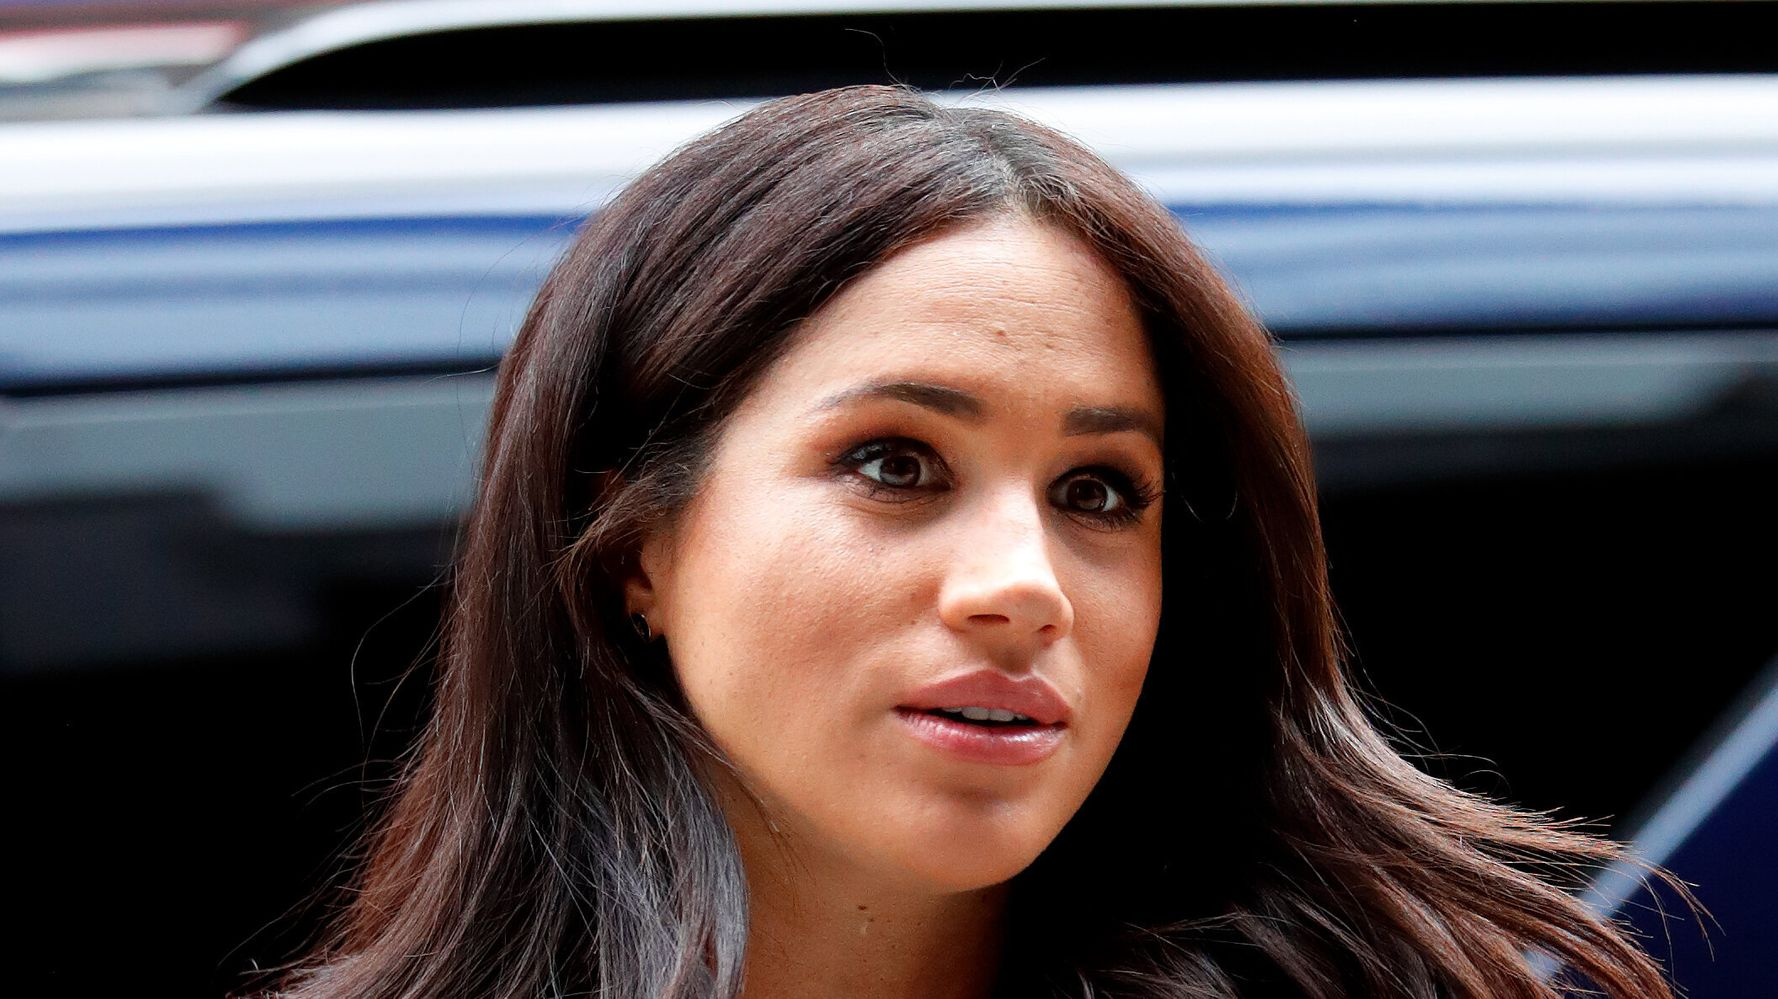 Supporters Rally Around Meghan Markle After She Shares Pregnancy Loss